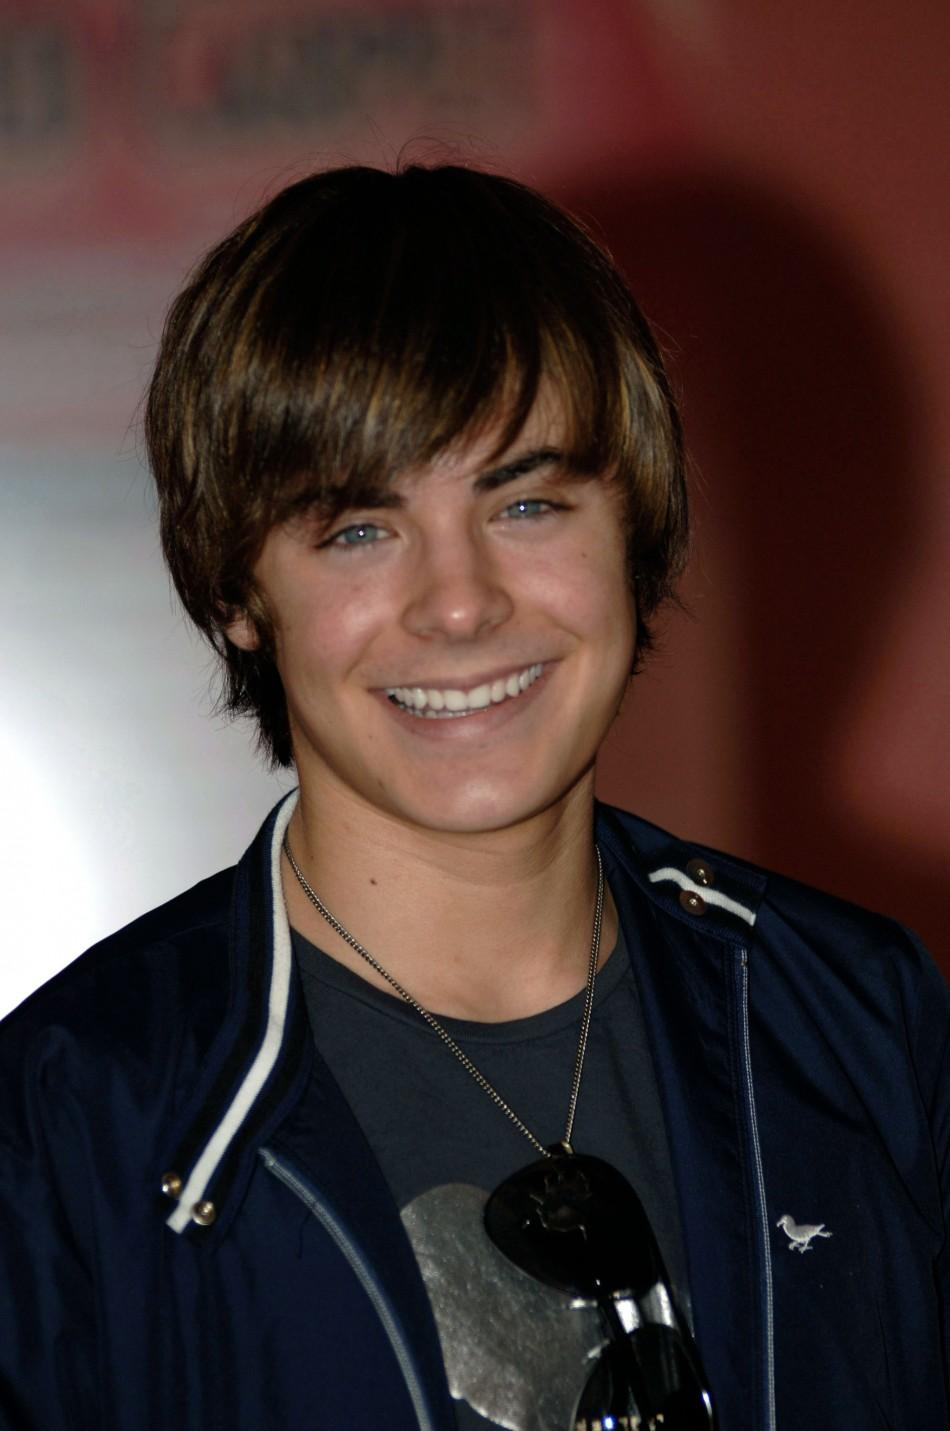 Zac Efron in 2006.